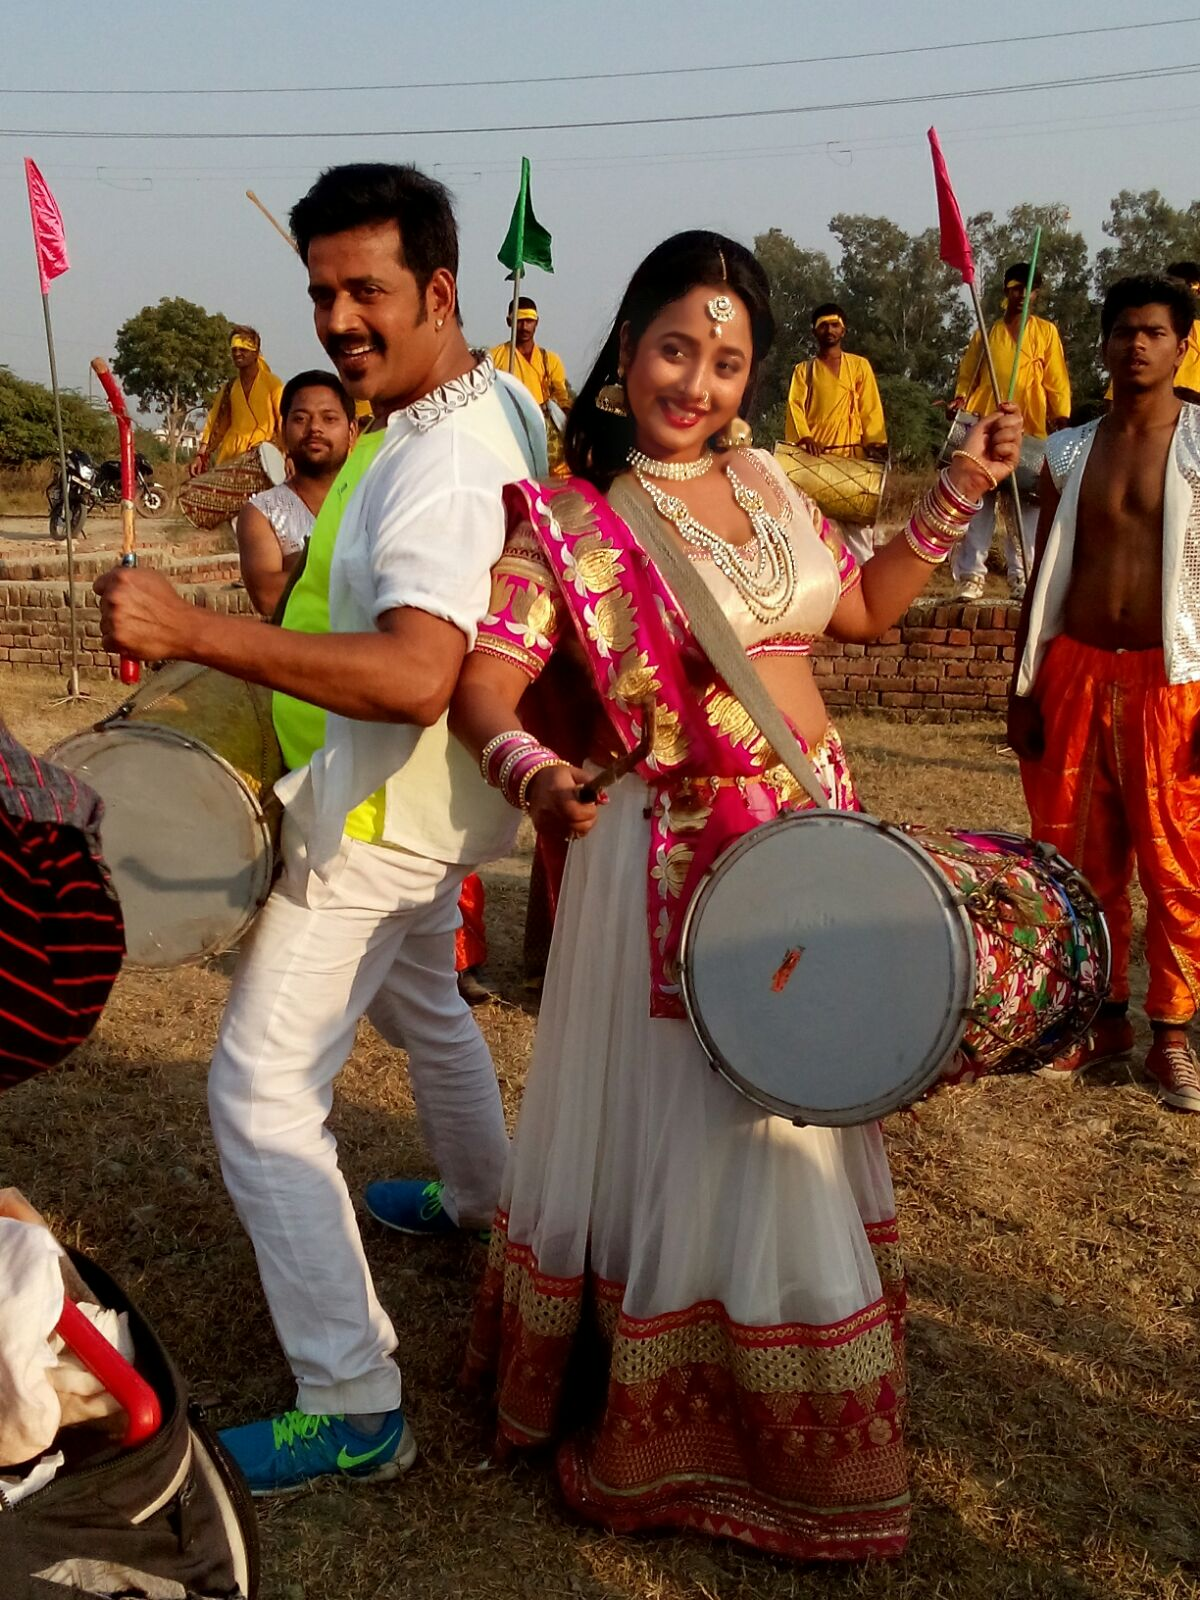 ON Set of Hum Hai Jodi No 1 Bhojpuri Film Shooting photo